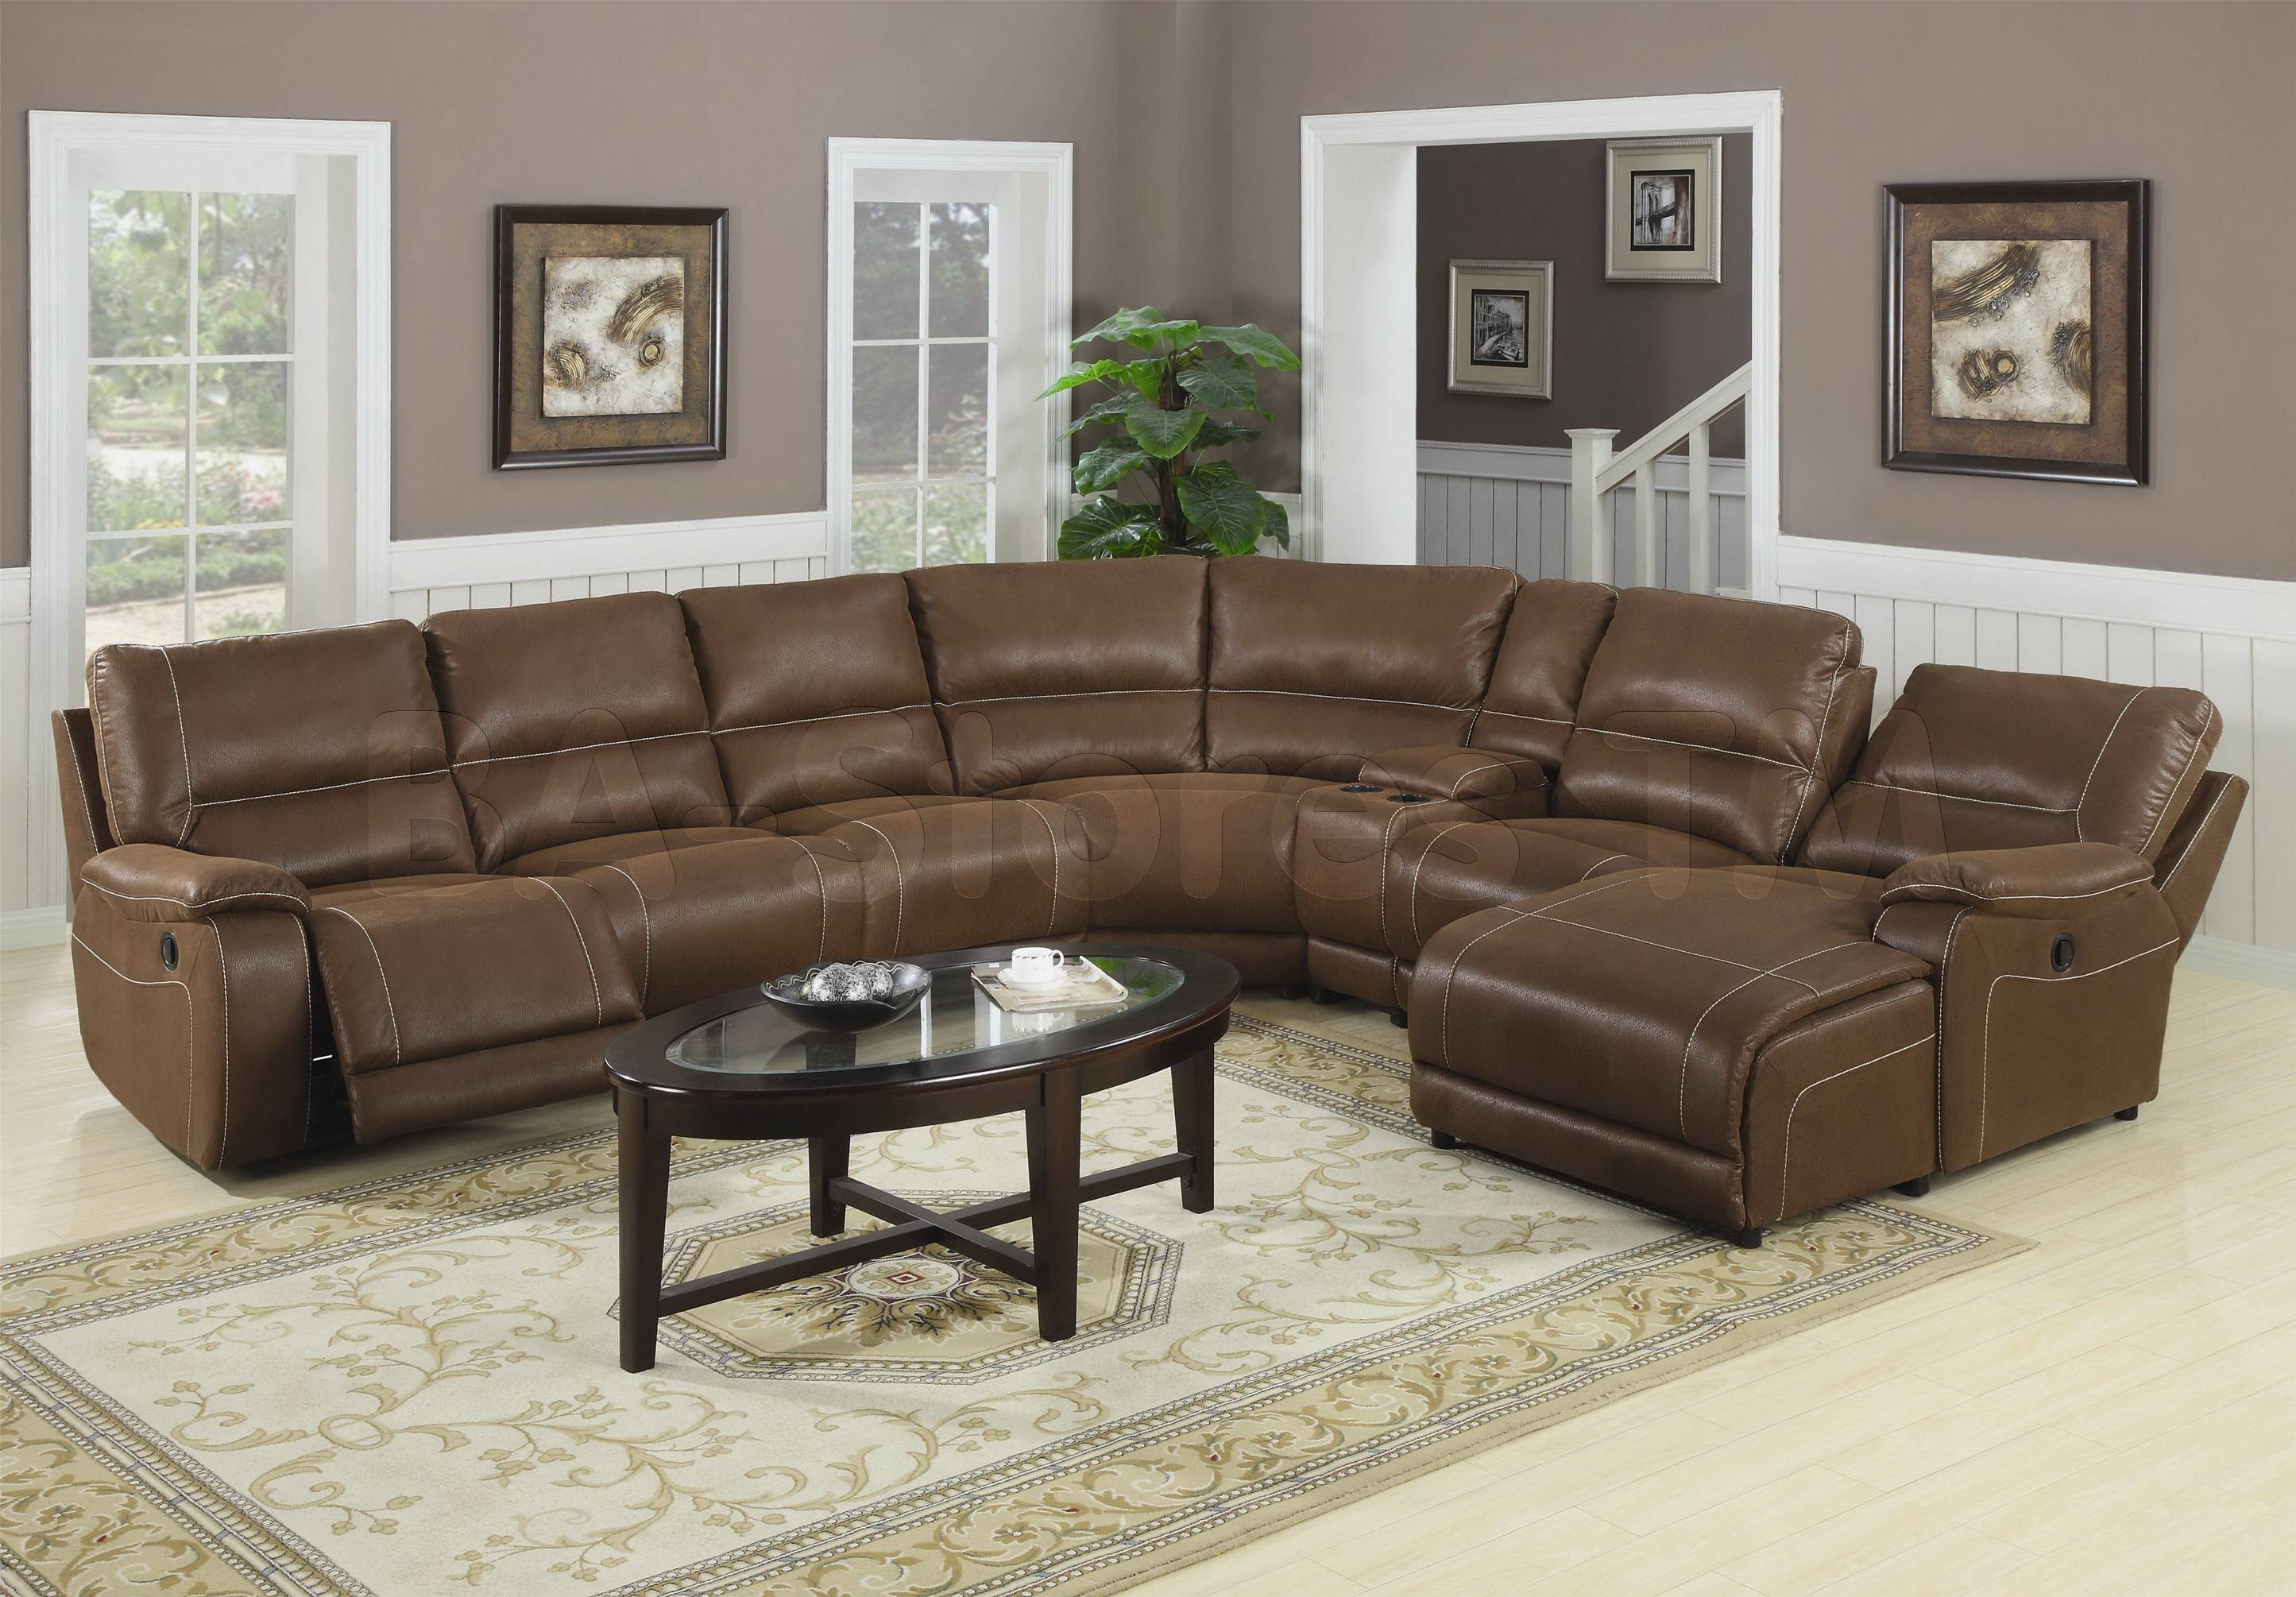 Long Sectional Sofa With Chaise | Tehranmix Decoration intended for Long Chaise Sofa (Image 12 of 25)